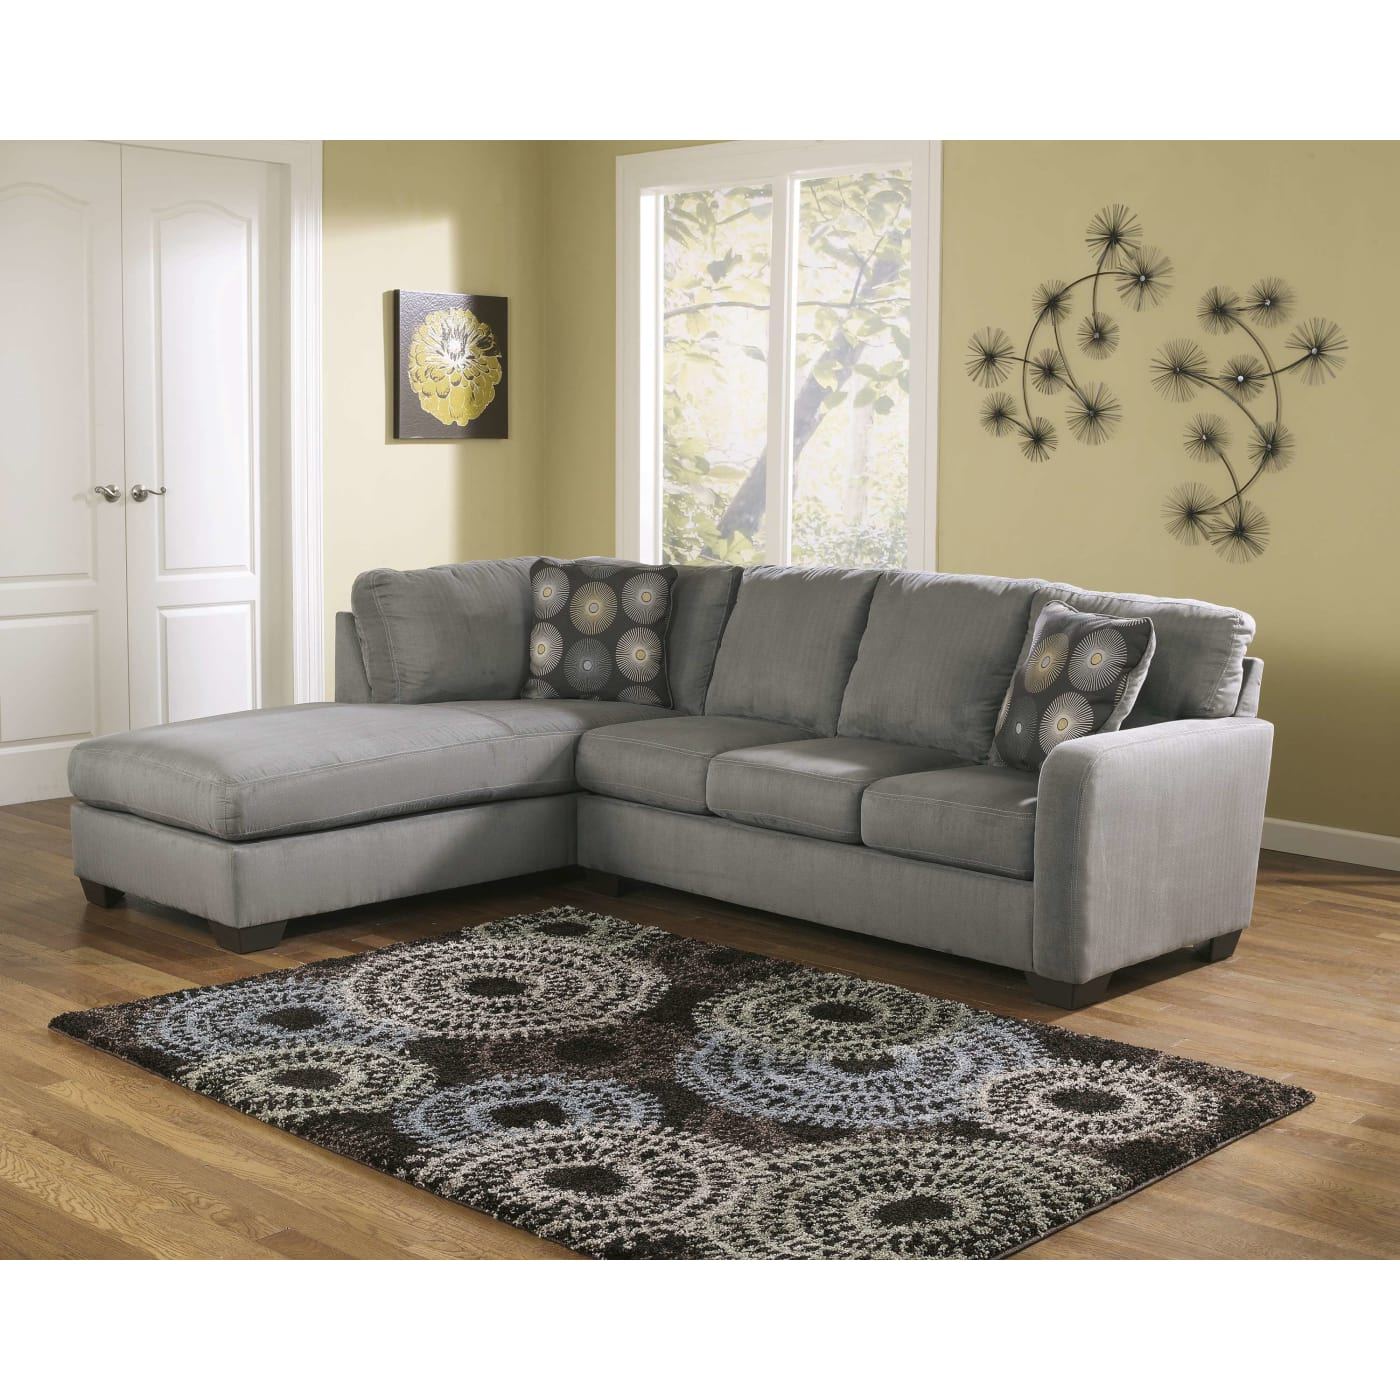 Signature Design By Ashley Zella Charcoal Left Chaise